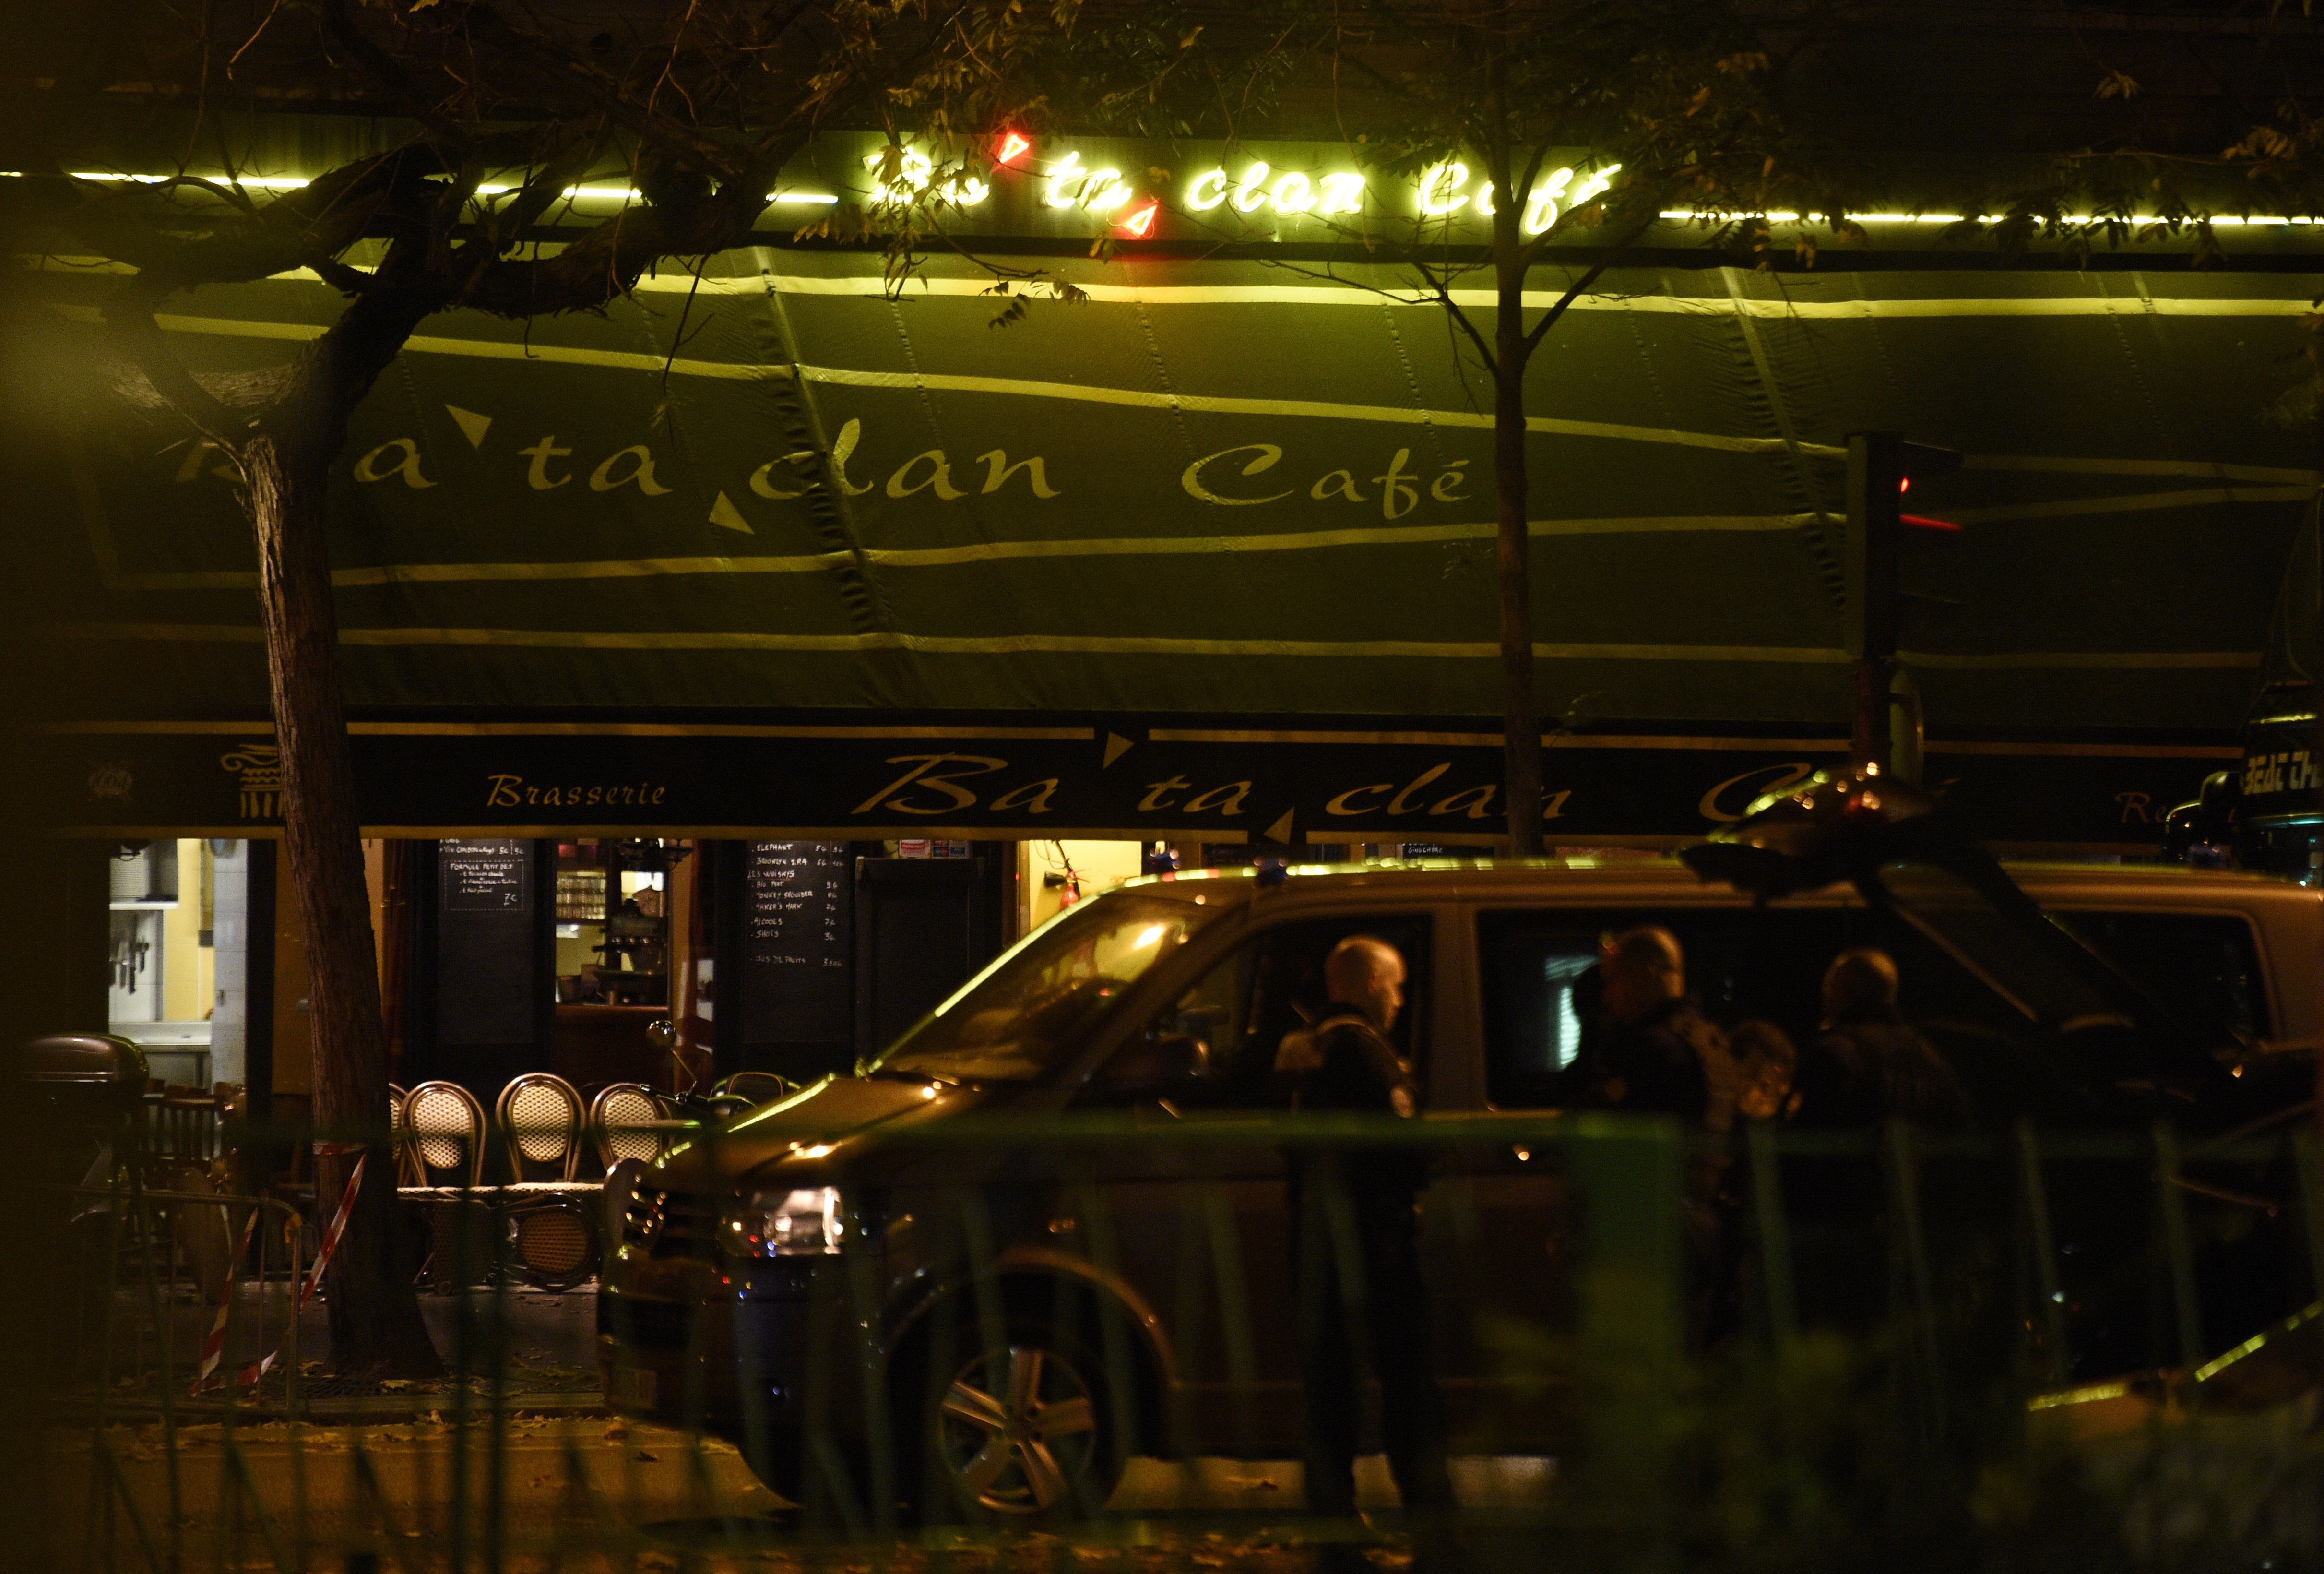 The Bataclan cafe near the Bataclan concert hall in central Paris after the attack Friday night. (Getty)